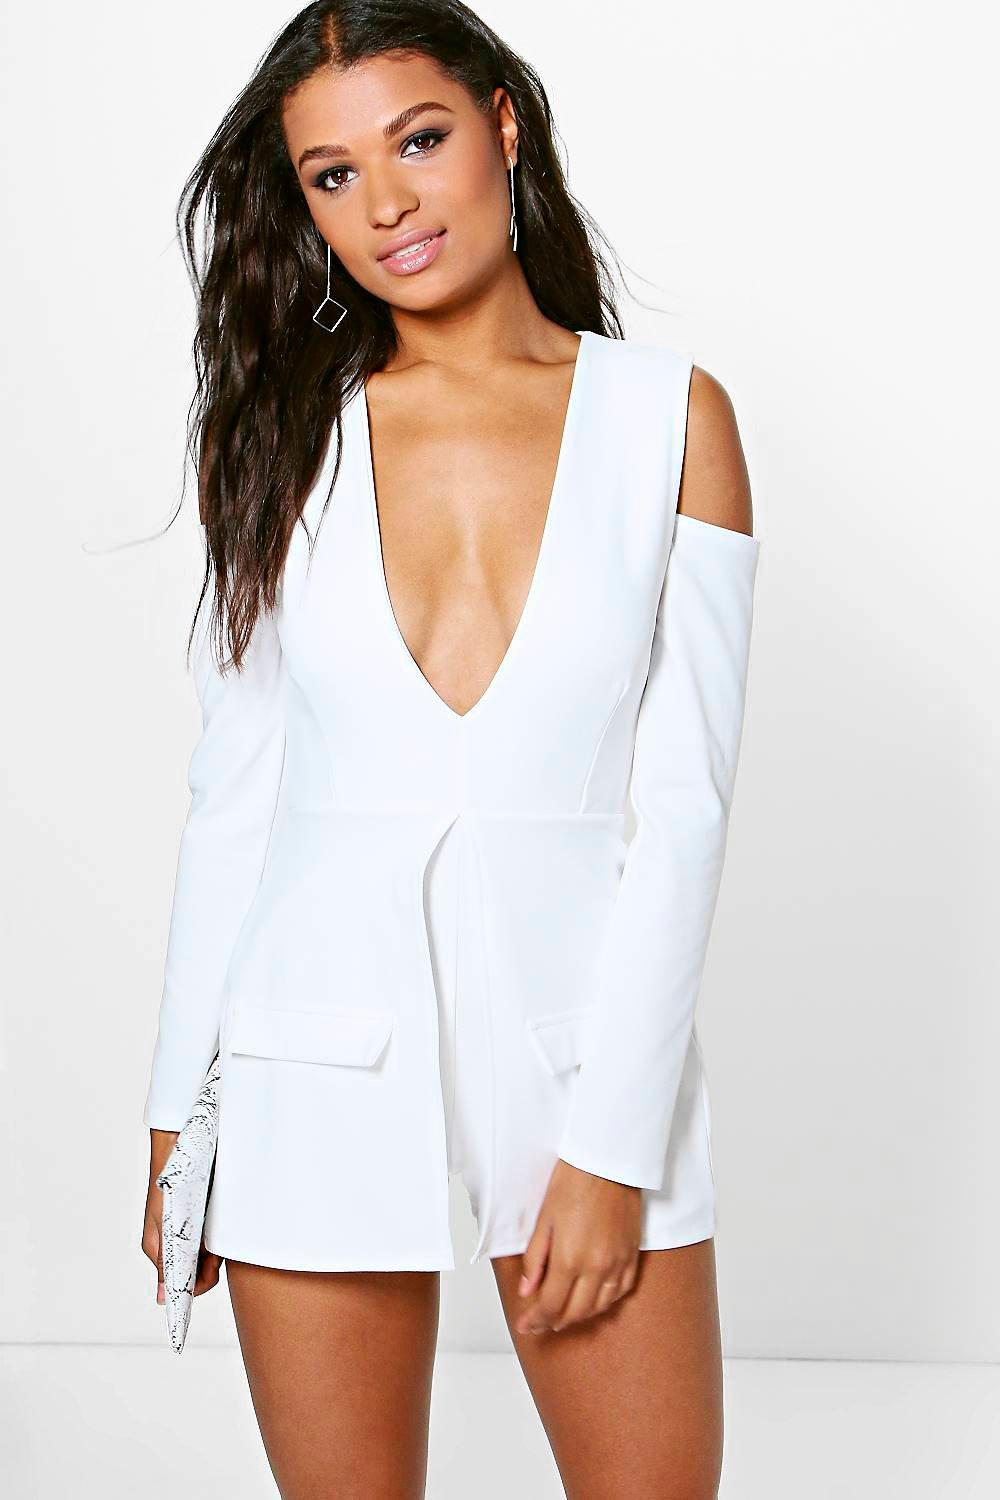 White Scoop Leotard Jumpsuit. $ A whole (look) in one! Fashionistas, stay ready: get your hands on chic, effortless jumpsuits and rompers. Love Culture has rompers with colorful floral prints, pockets, plunging necklines, and more. Slay in sexy jumpsuits with high slit legs, capes, ruffles, sequins, bell sleeves, mesh details and more!.